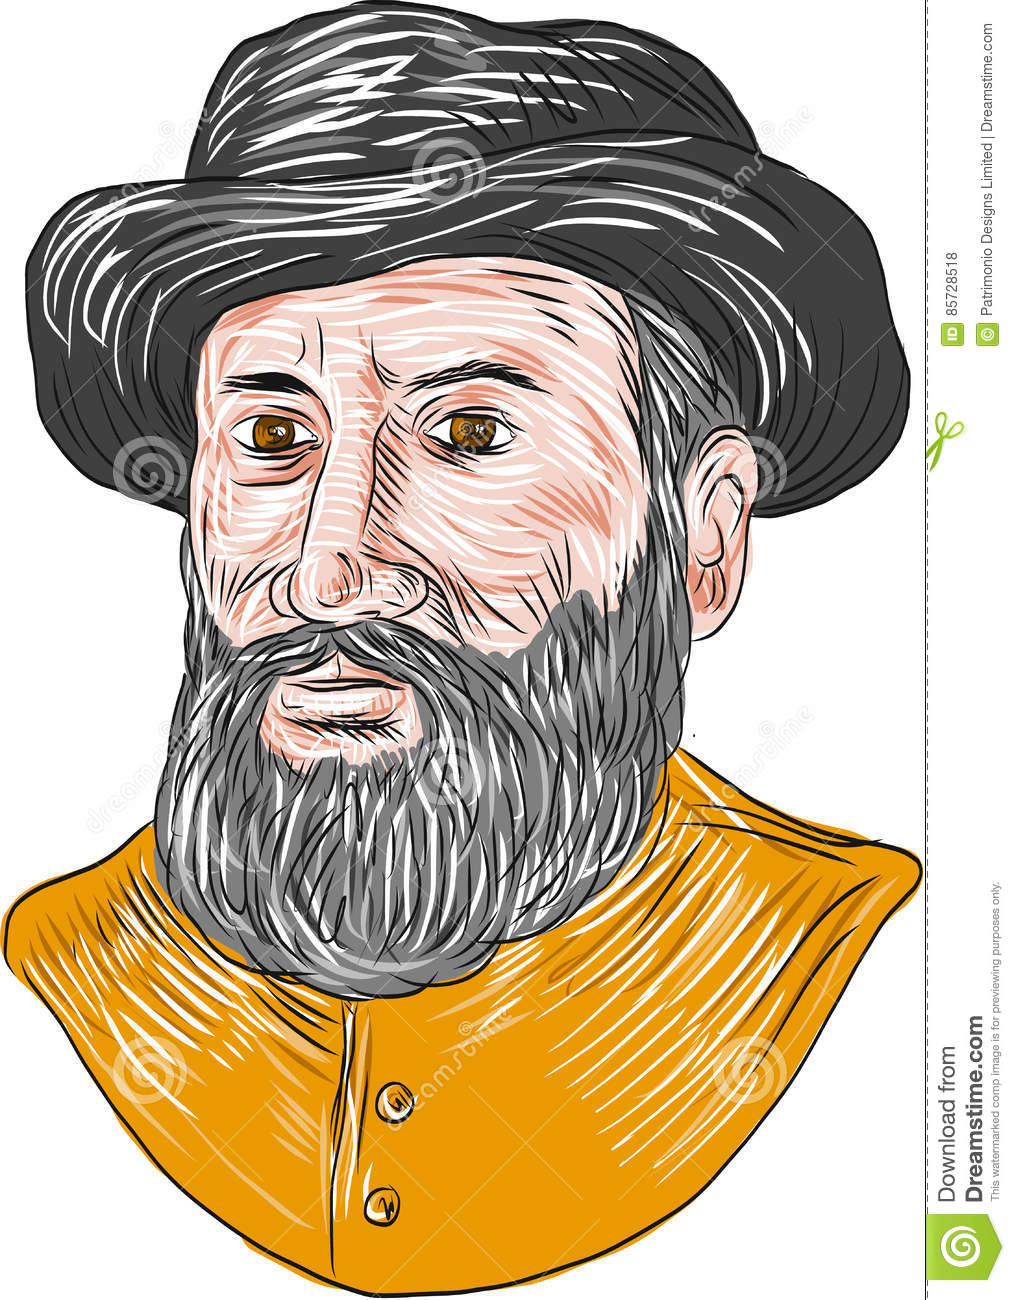 magellans expedition essay Ferdinand magellan was born in sabrosa, portugal, in 1480 into a noble family after serving as a court page for two years, his adventurous spirit led him to a career as an explorer in 1506, magellan went to the spice islands (indonesia) to participate in several military and exploratory.